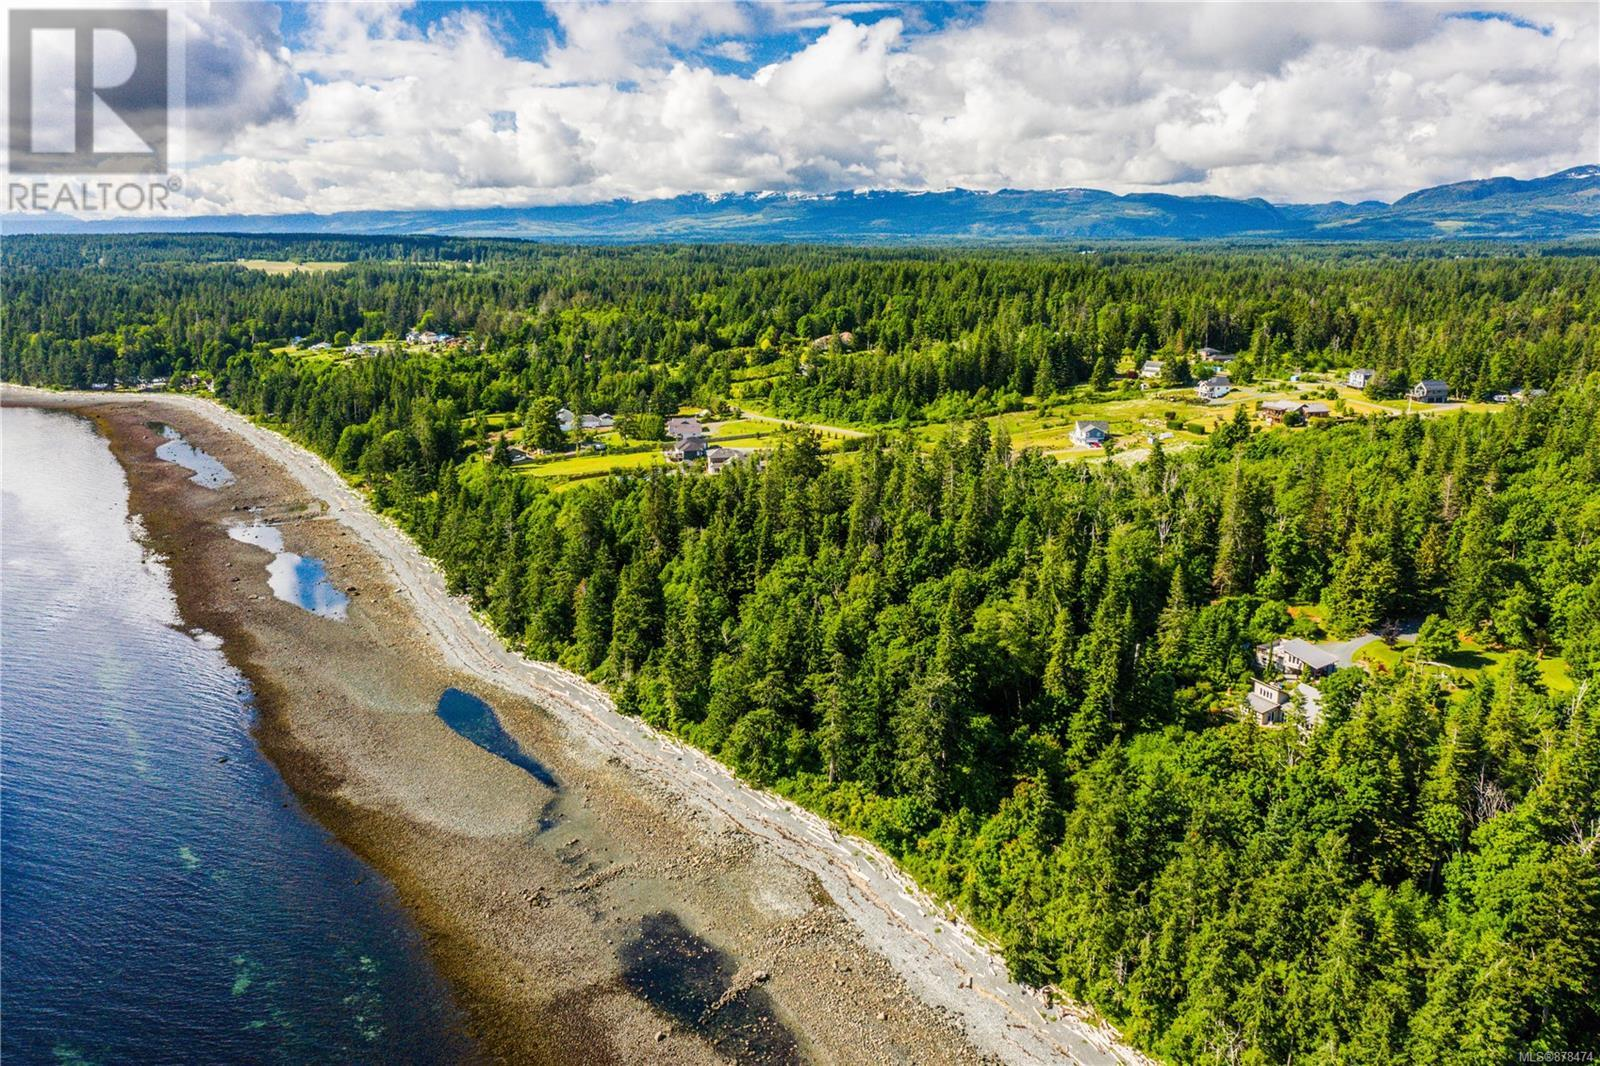 MLS® #878474 - Courtenay For sale Image #1